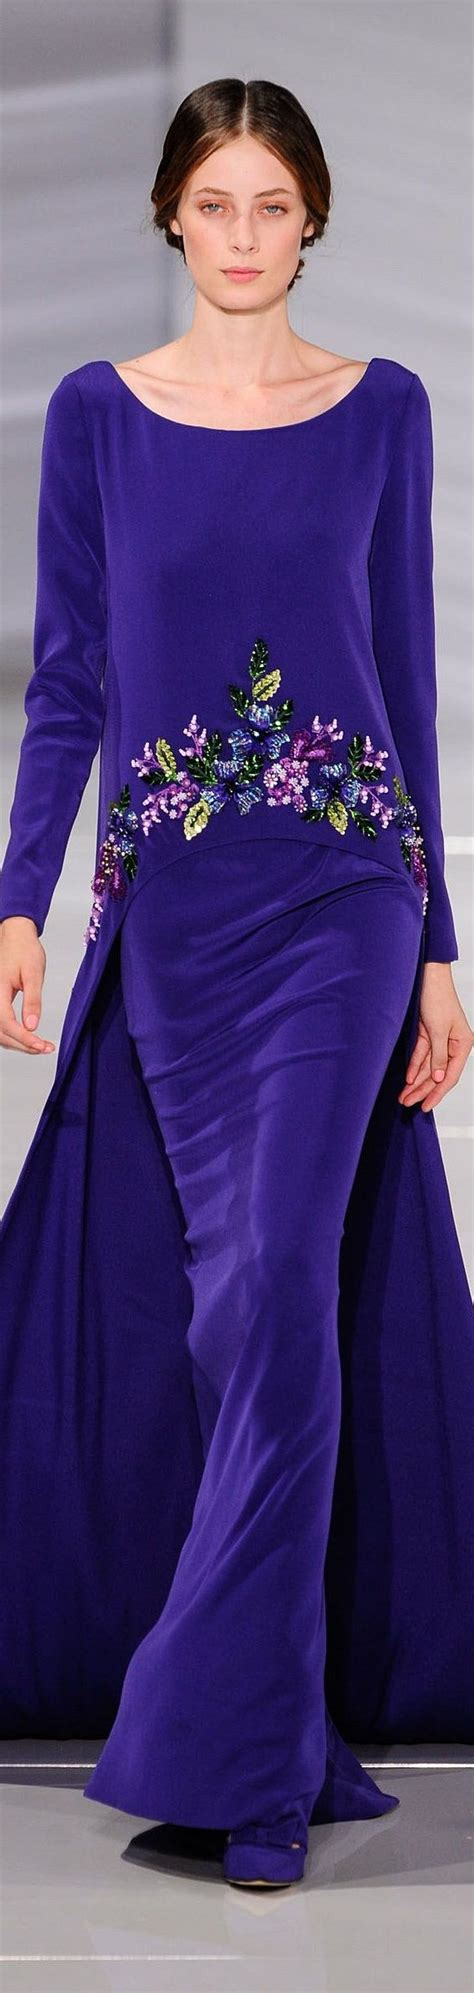 Velvet Baju Kurung 38 best images about baju kurung design on fashion modern abaya and gowns